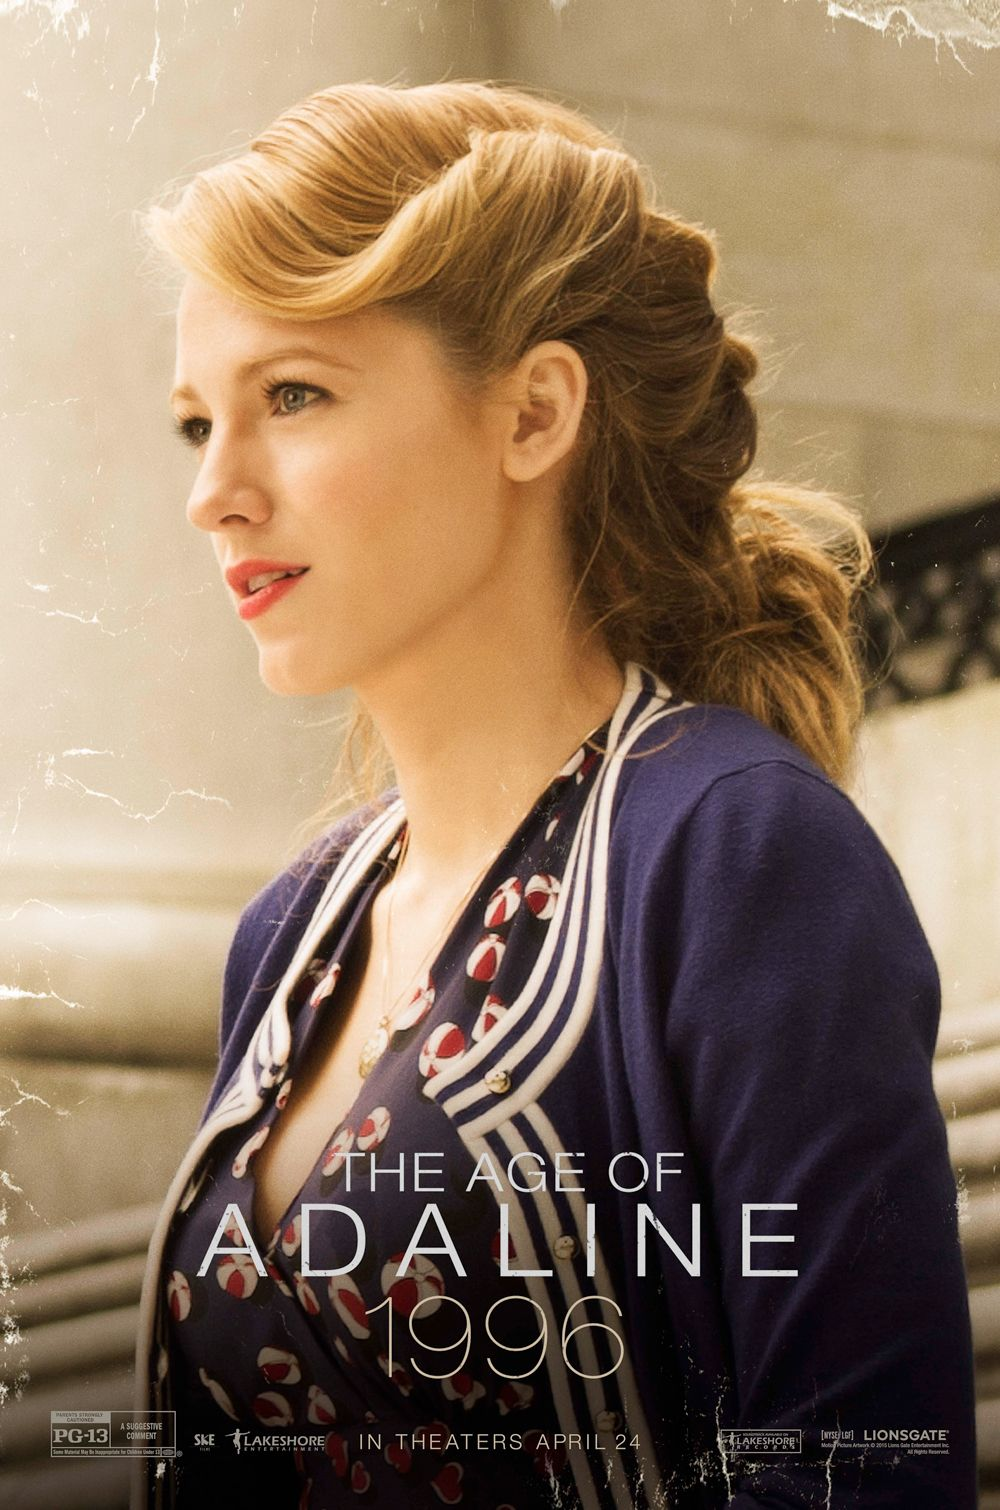 The Age of Adaline 1996